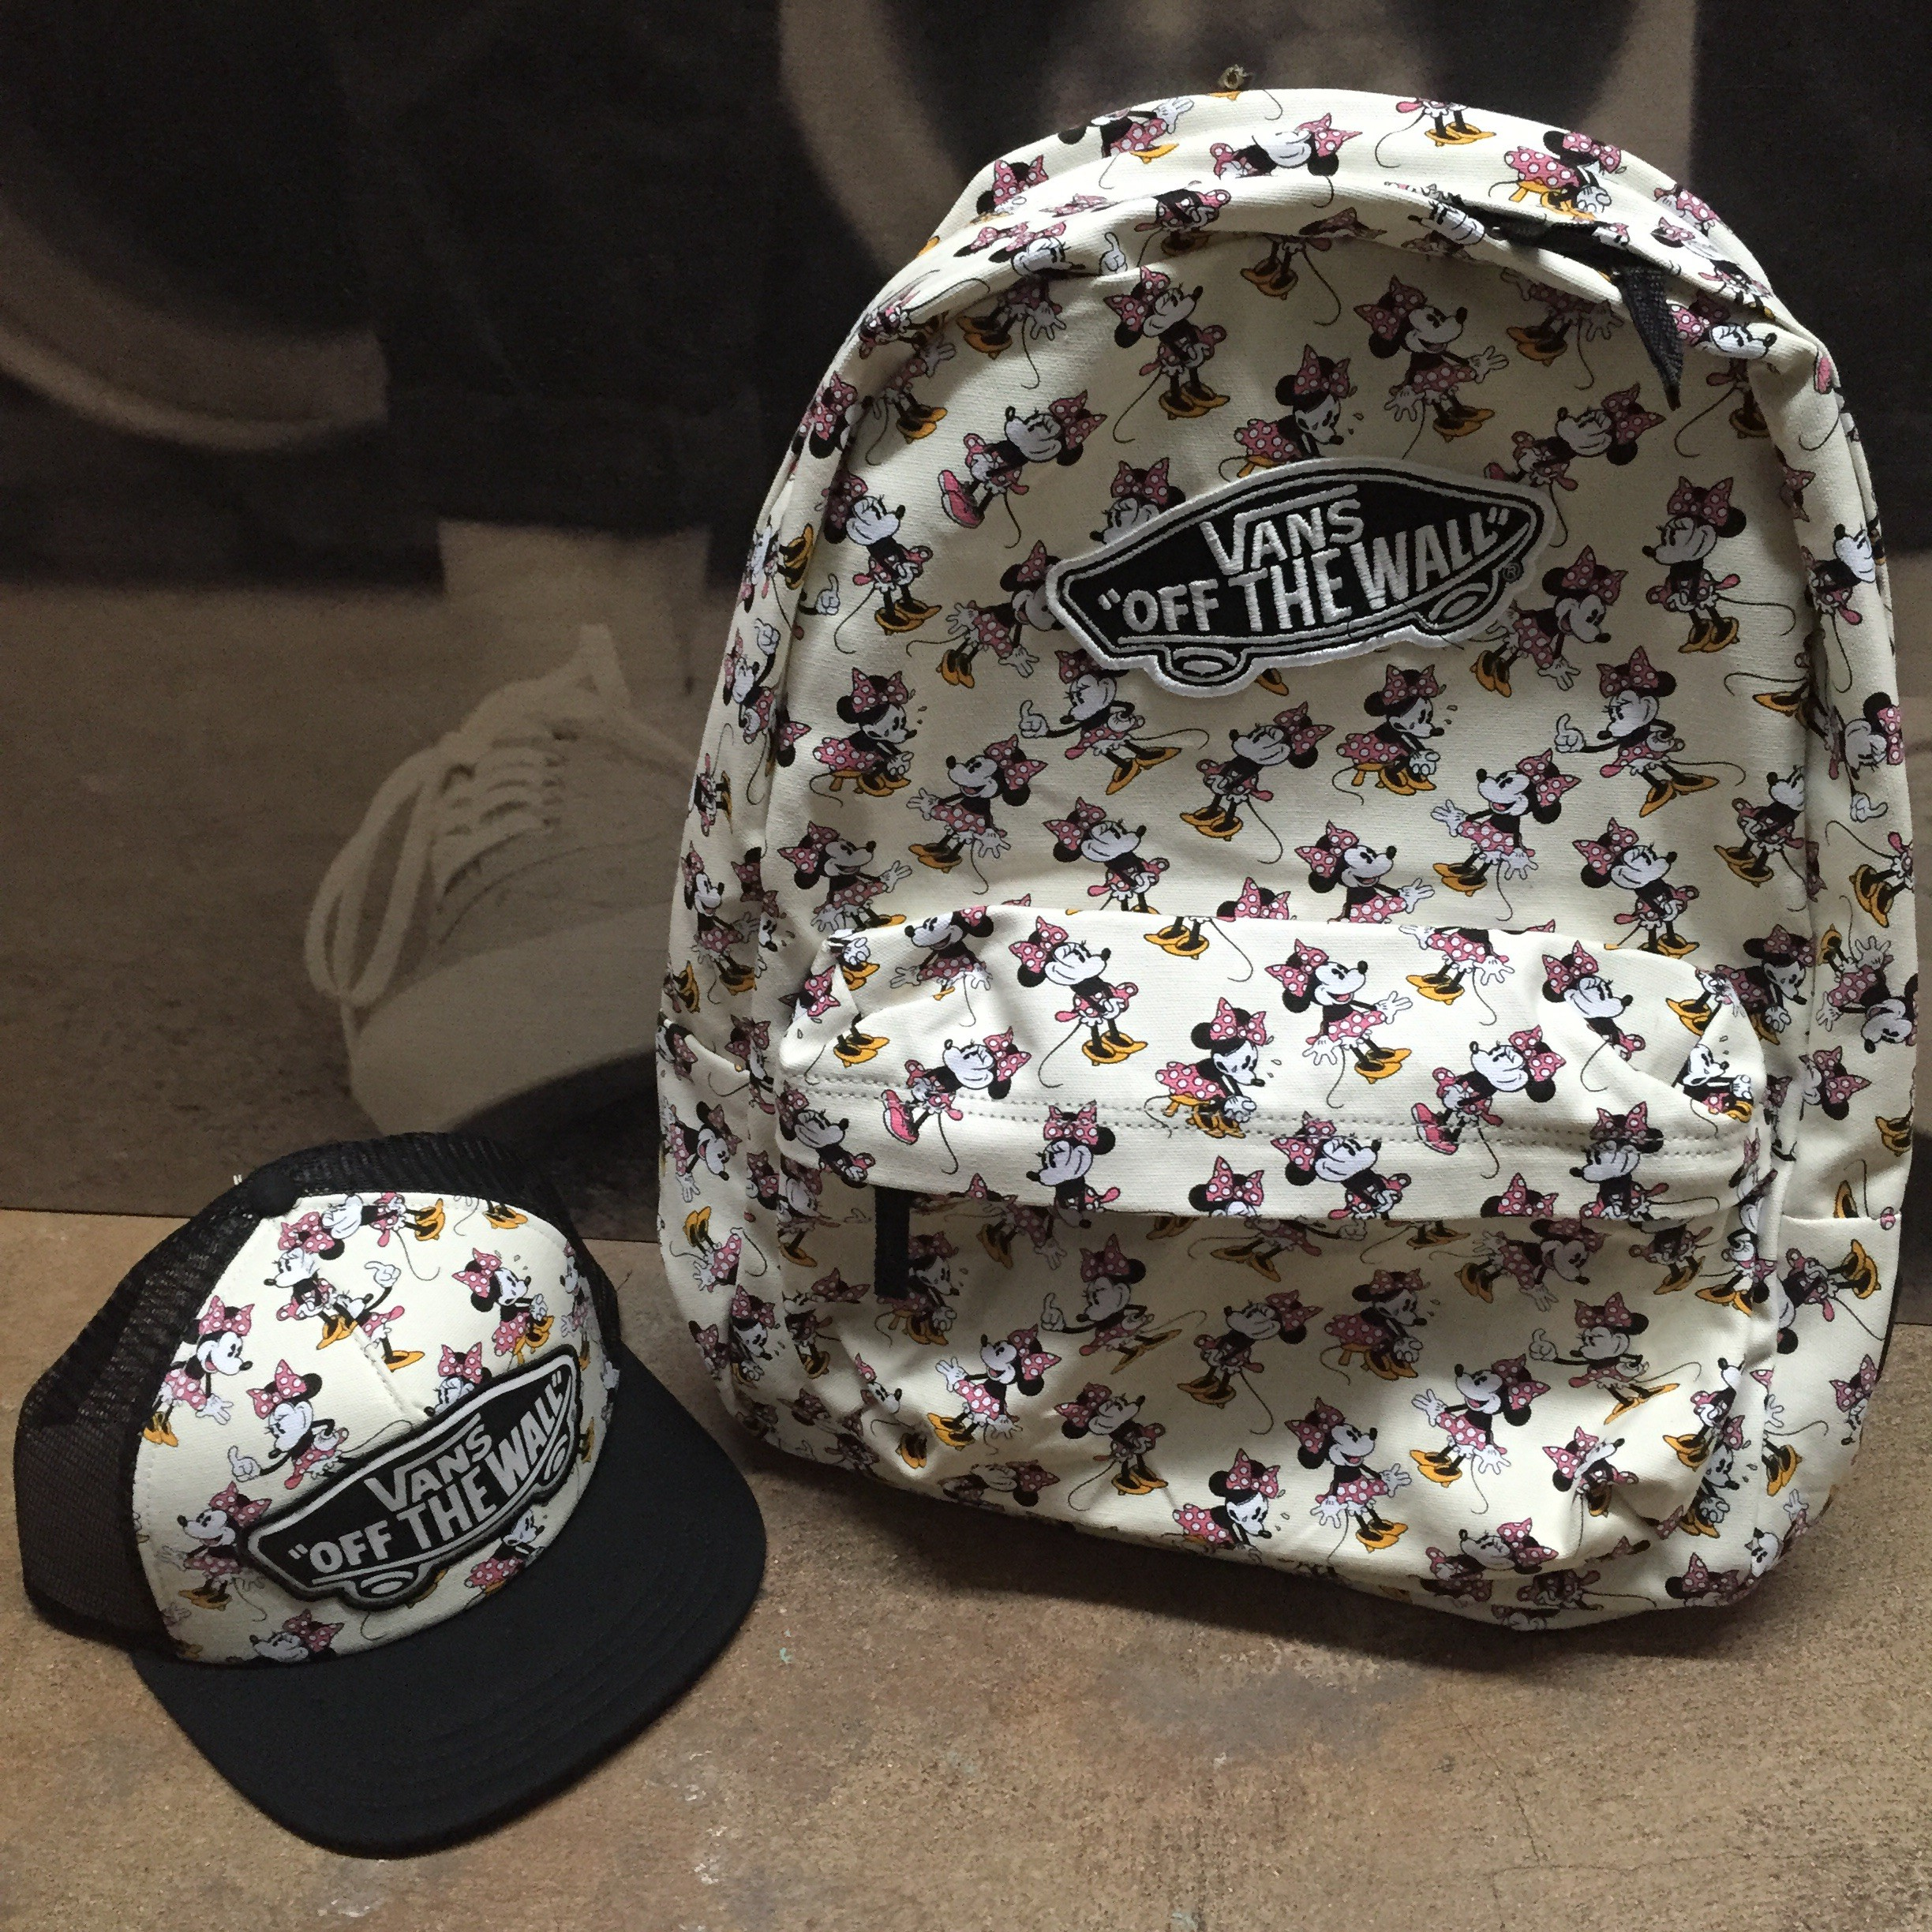 Vans Minnie Mouse backpack and hat